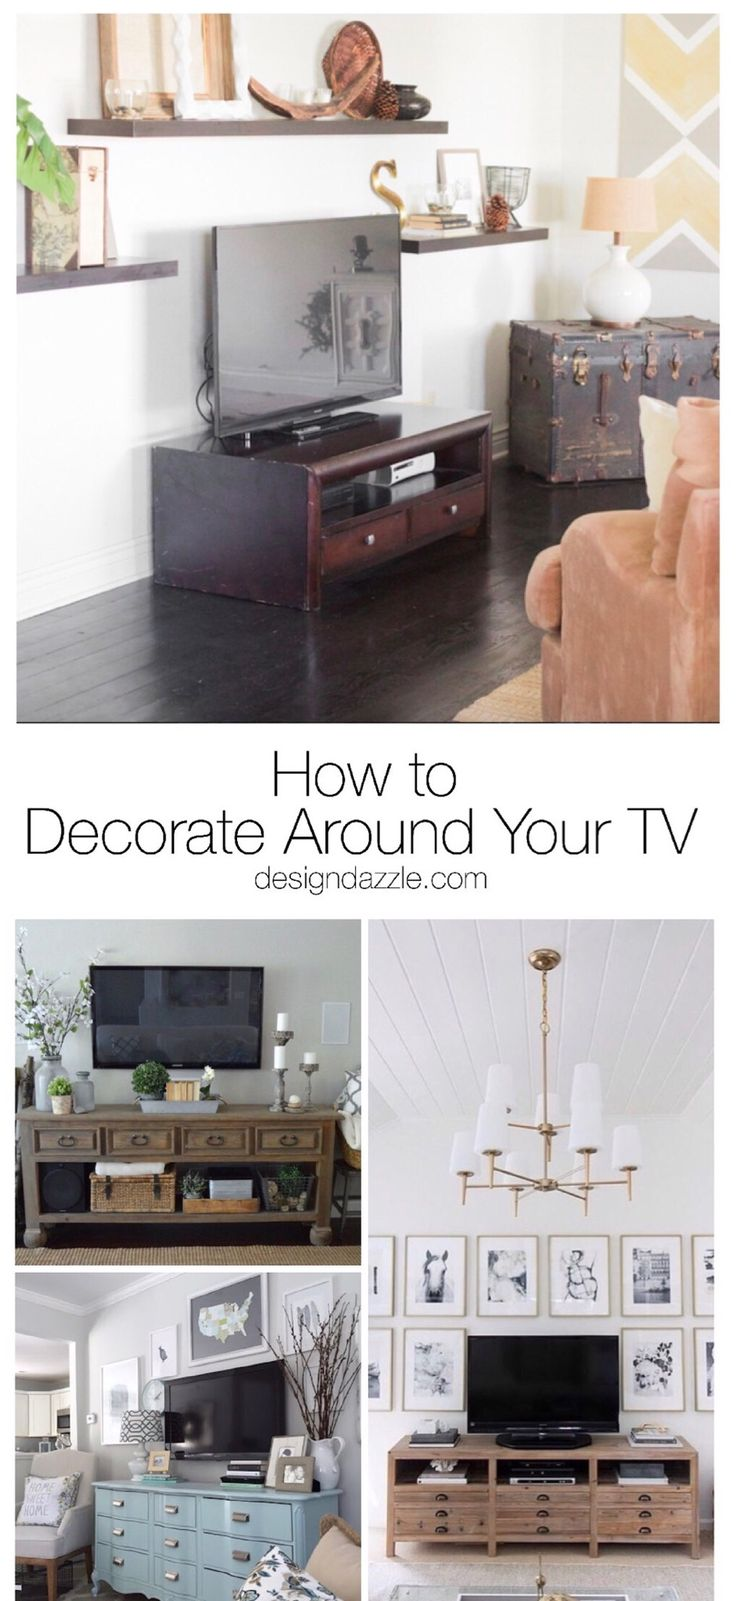 17 Best images about DIY Home Decor Ideas on Pinterest | Bedroom makeovers, Happily ever after ...